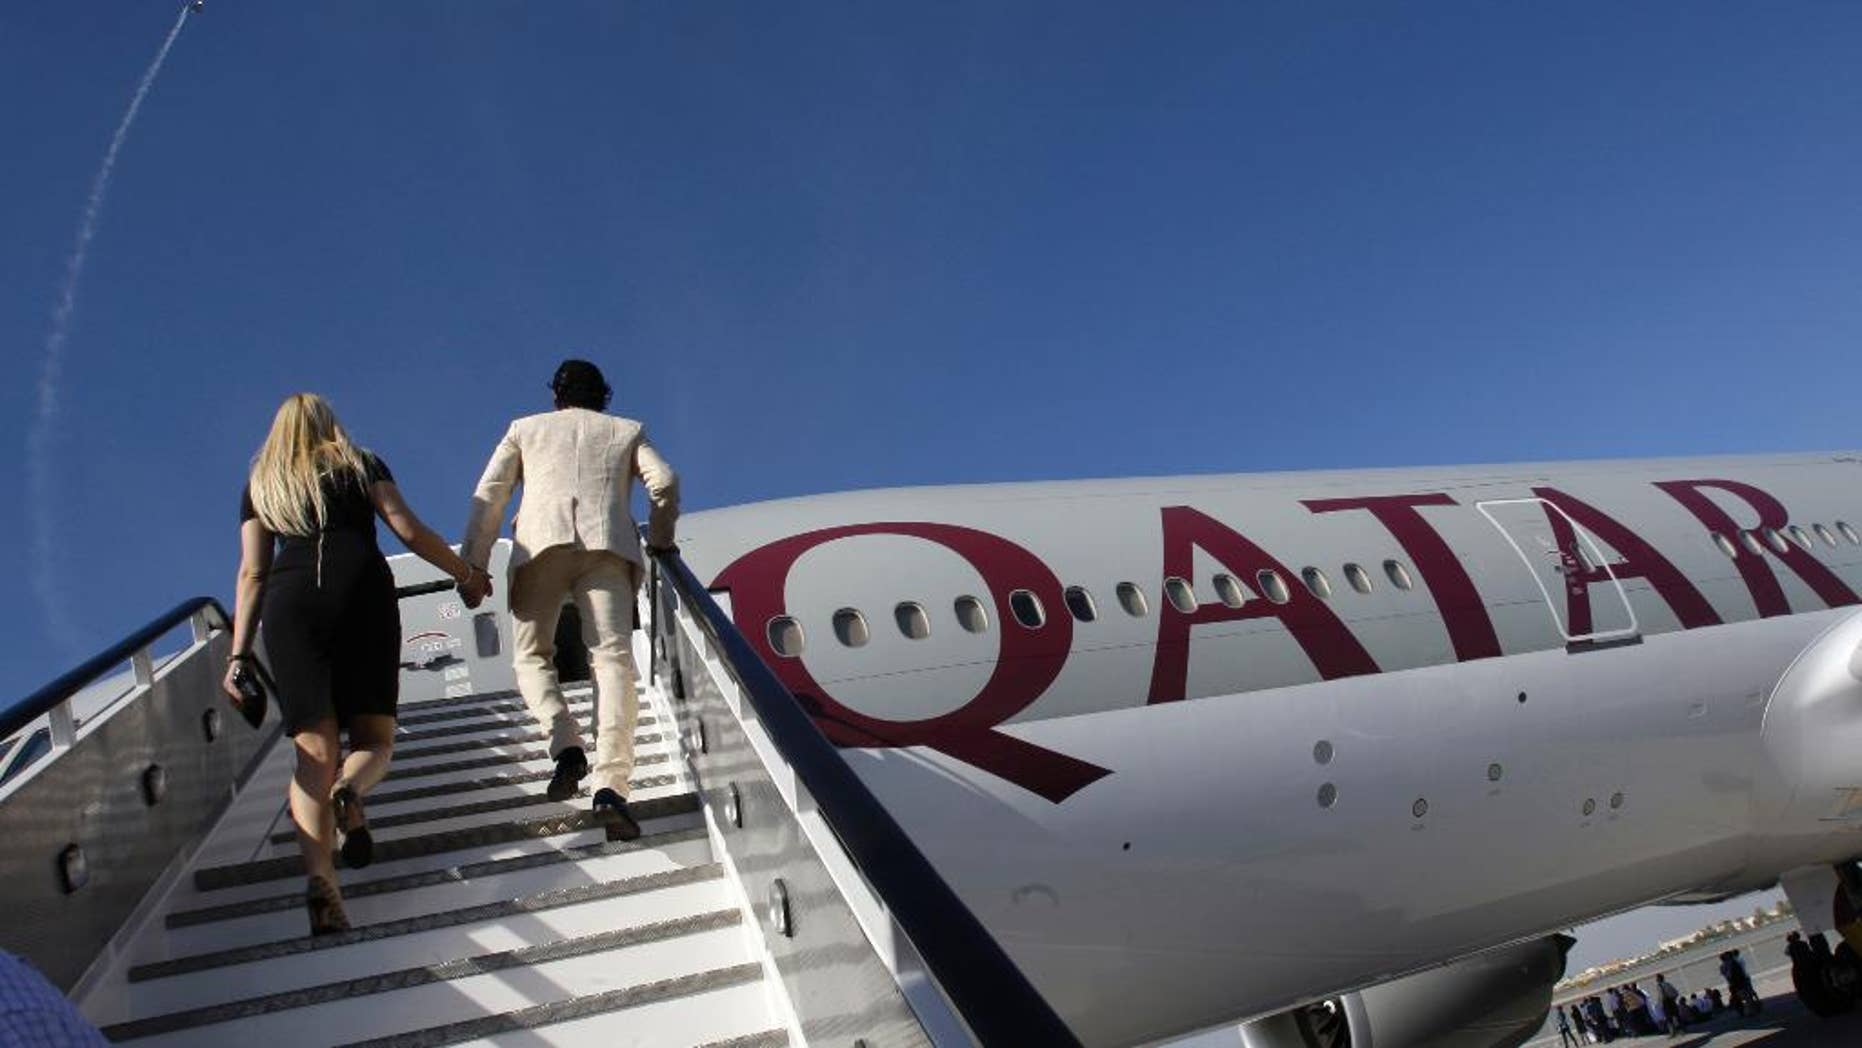 FILE - In this Nov. 14, 2011 file photo, visitors walk up stairs to inspect a Boeing 777-200LR aircraft in Qatar Airways livery at the Dubai Airshow in Dubai, United Arab Emirates. Qatar Airways has launched the world's longest scheduled commercial airline route with the arrival of its flight from Doha to Aukland, New Zealand. The Gulf carrier said flight QR920 touched down in Aukland early on Monday, Feb. 6, 2017, after covering a distance of 14,535 kilometers (9,032 miles). (AP Photo/Kamran Jebreili, File)